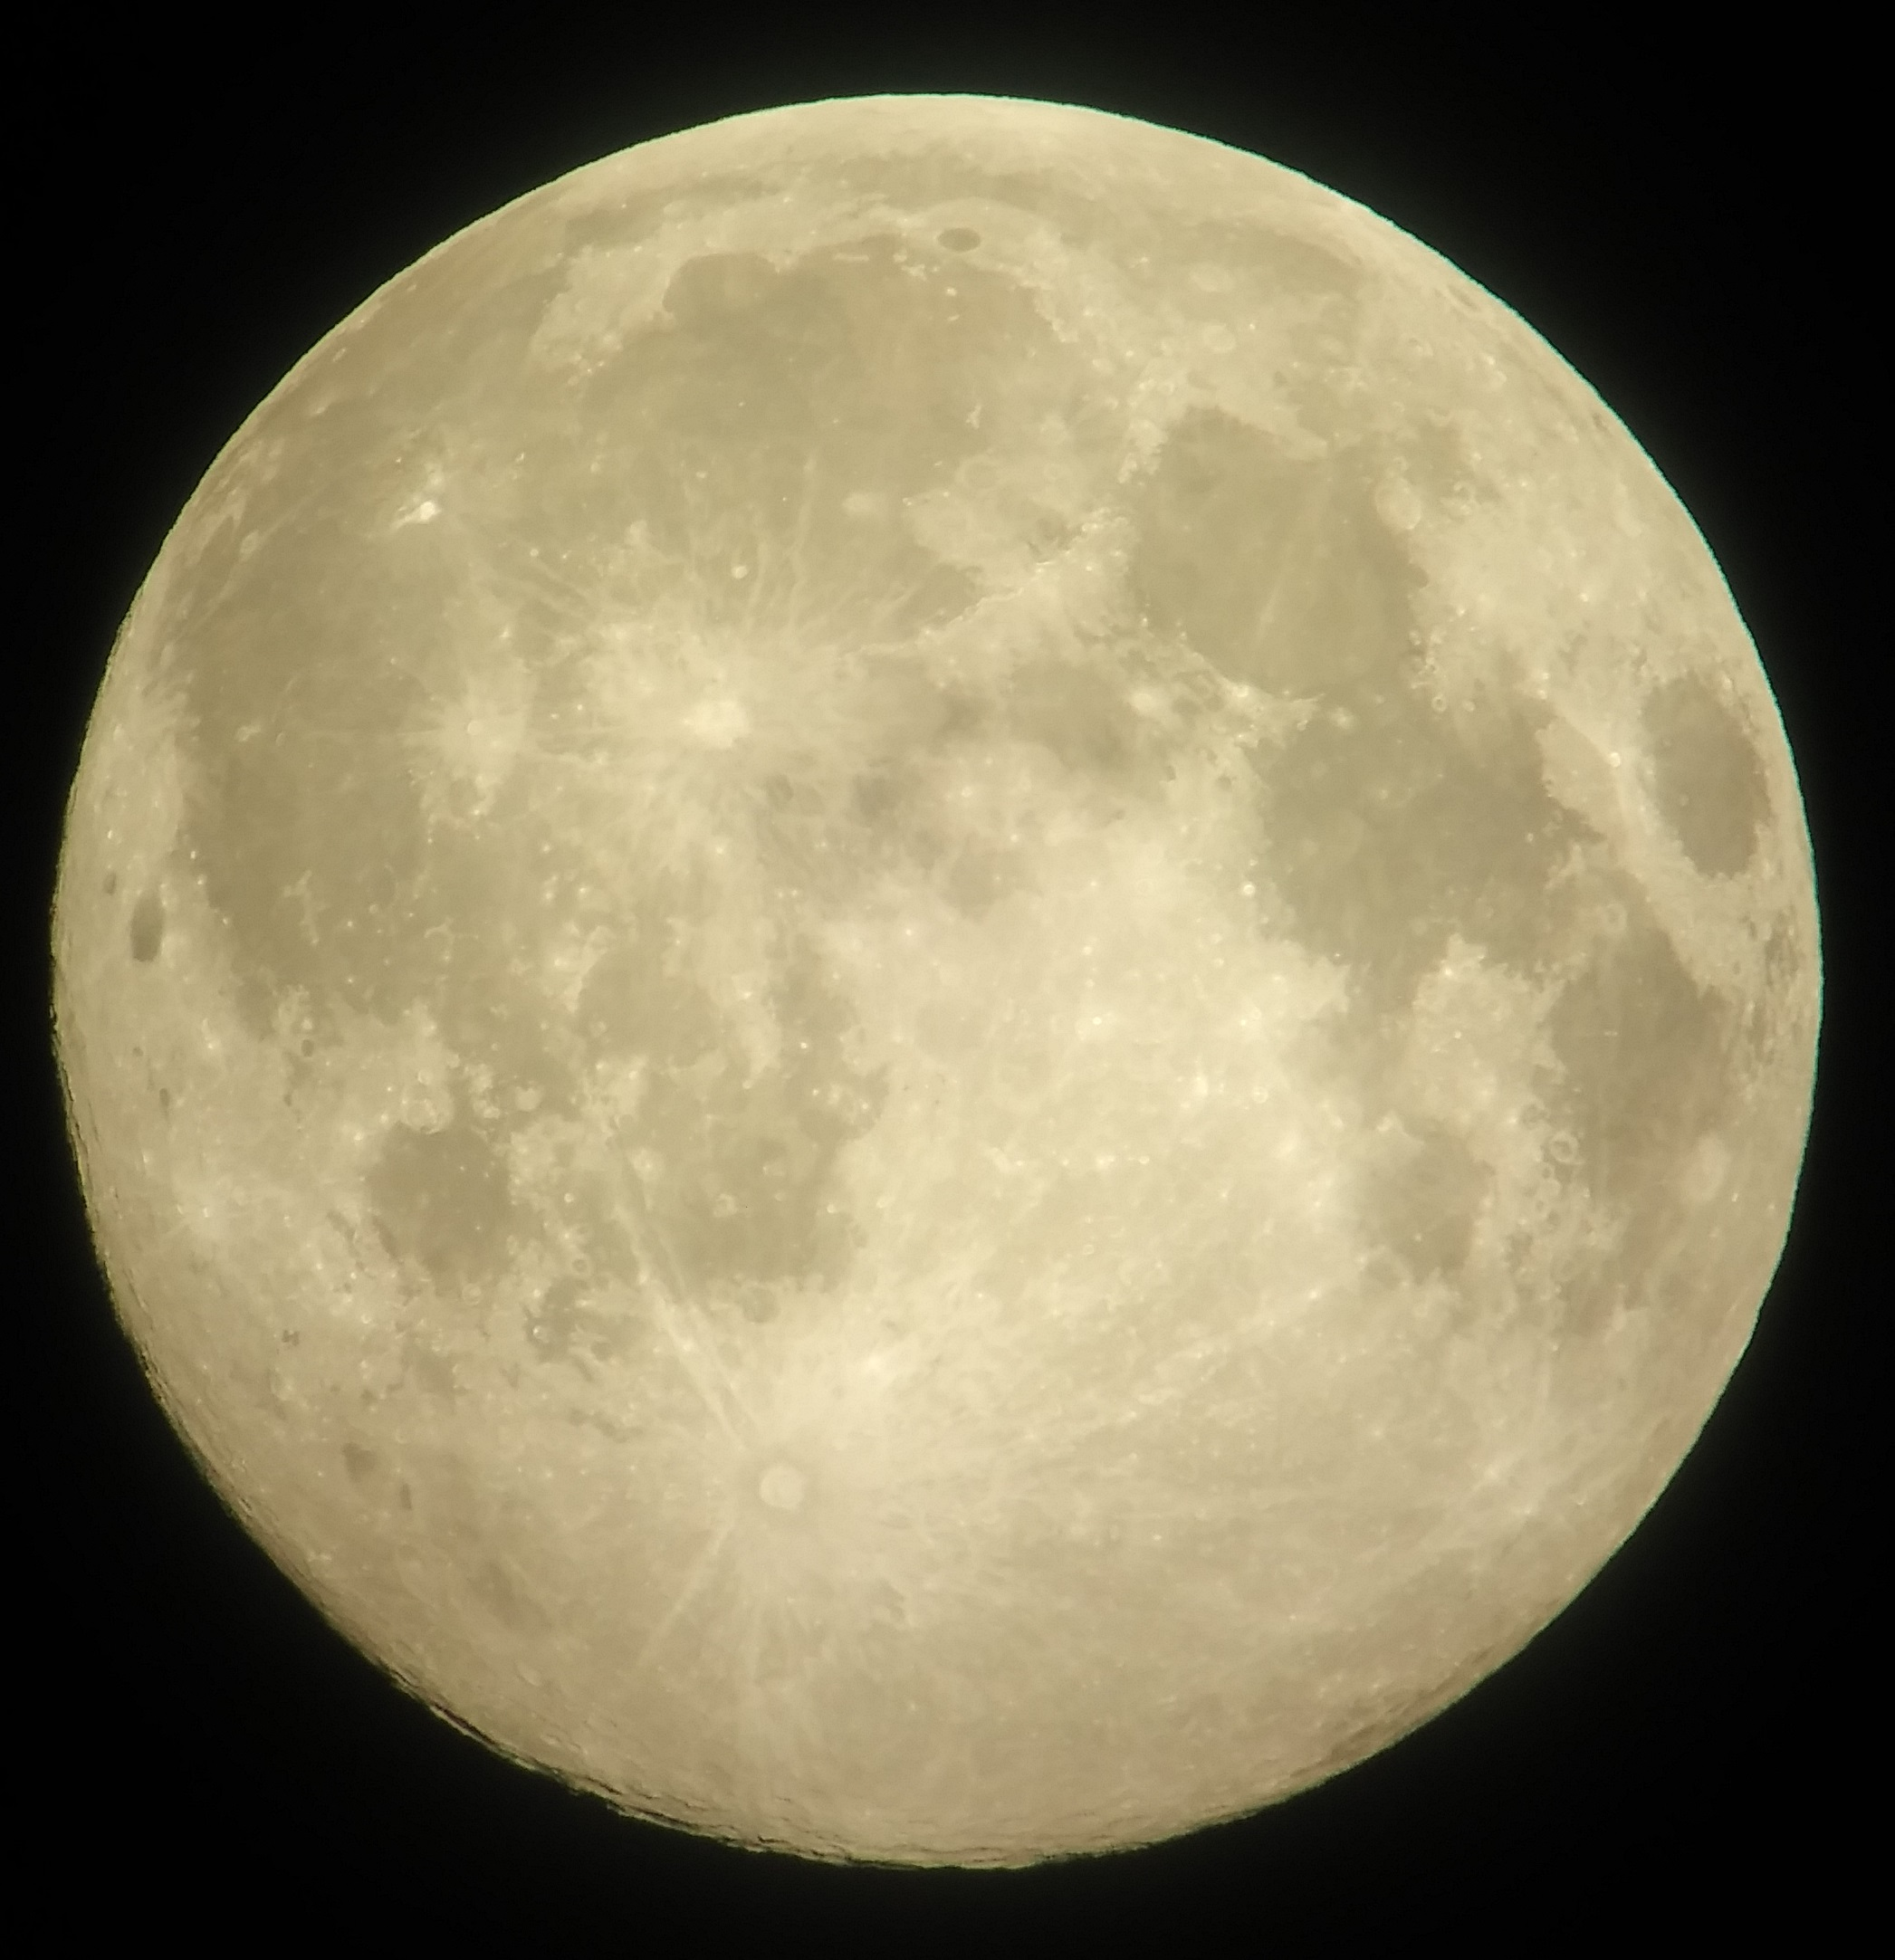 full_size_Moon_feb_26th_2021.jpg